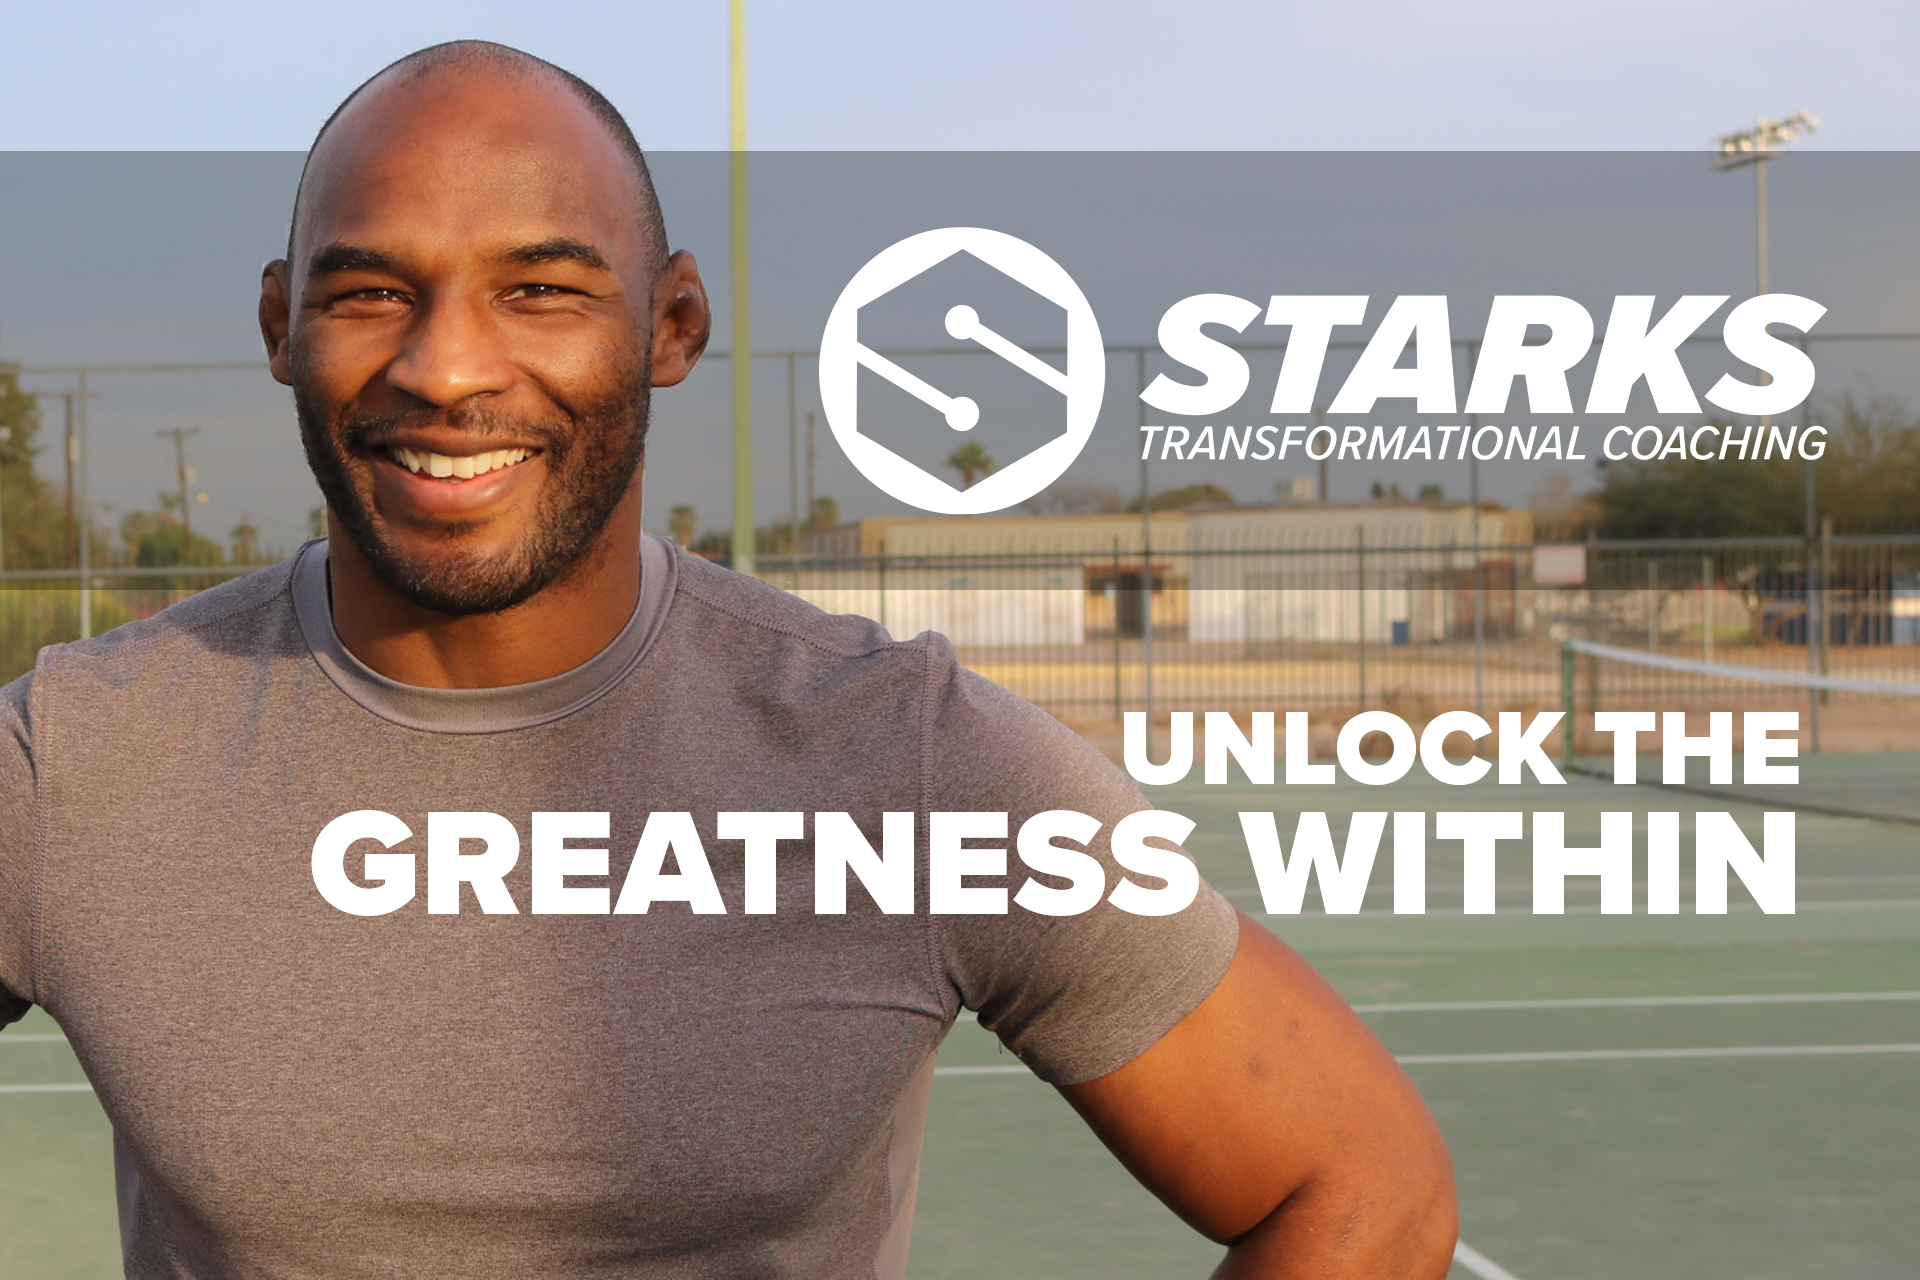 Starks Transformational Coaching | Unlock the Greatness Within